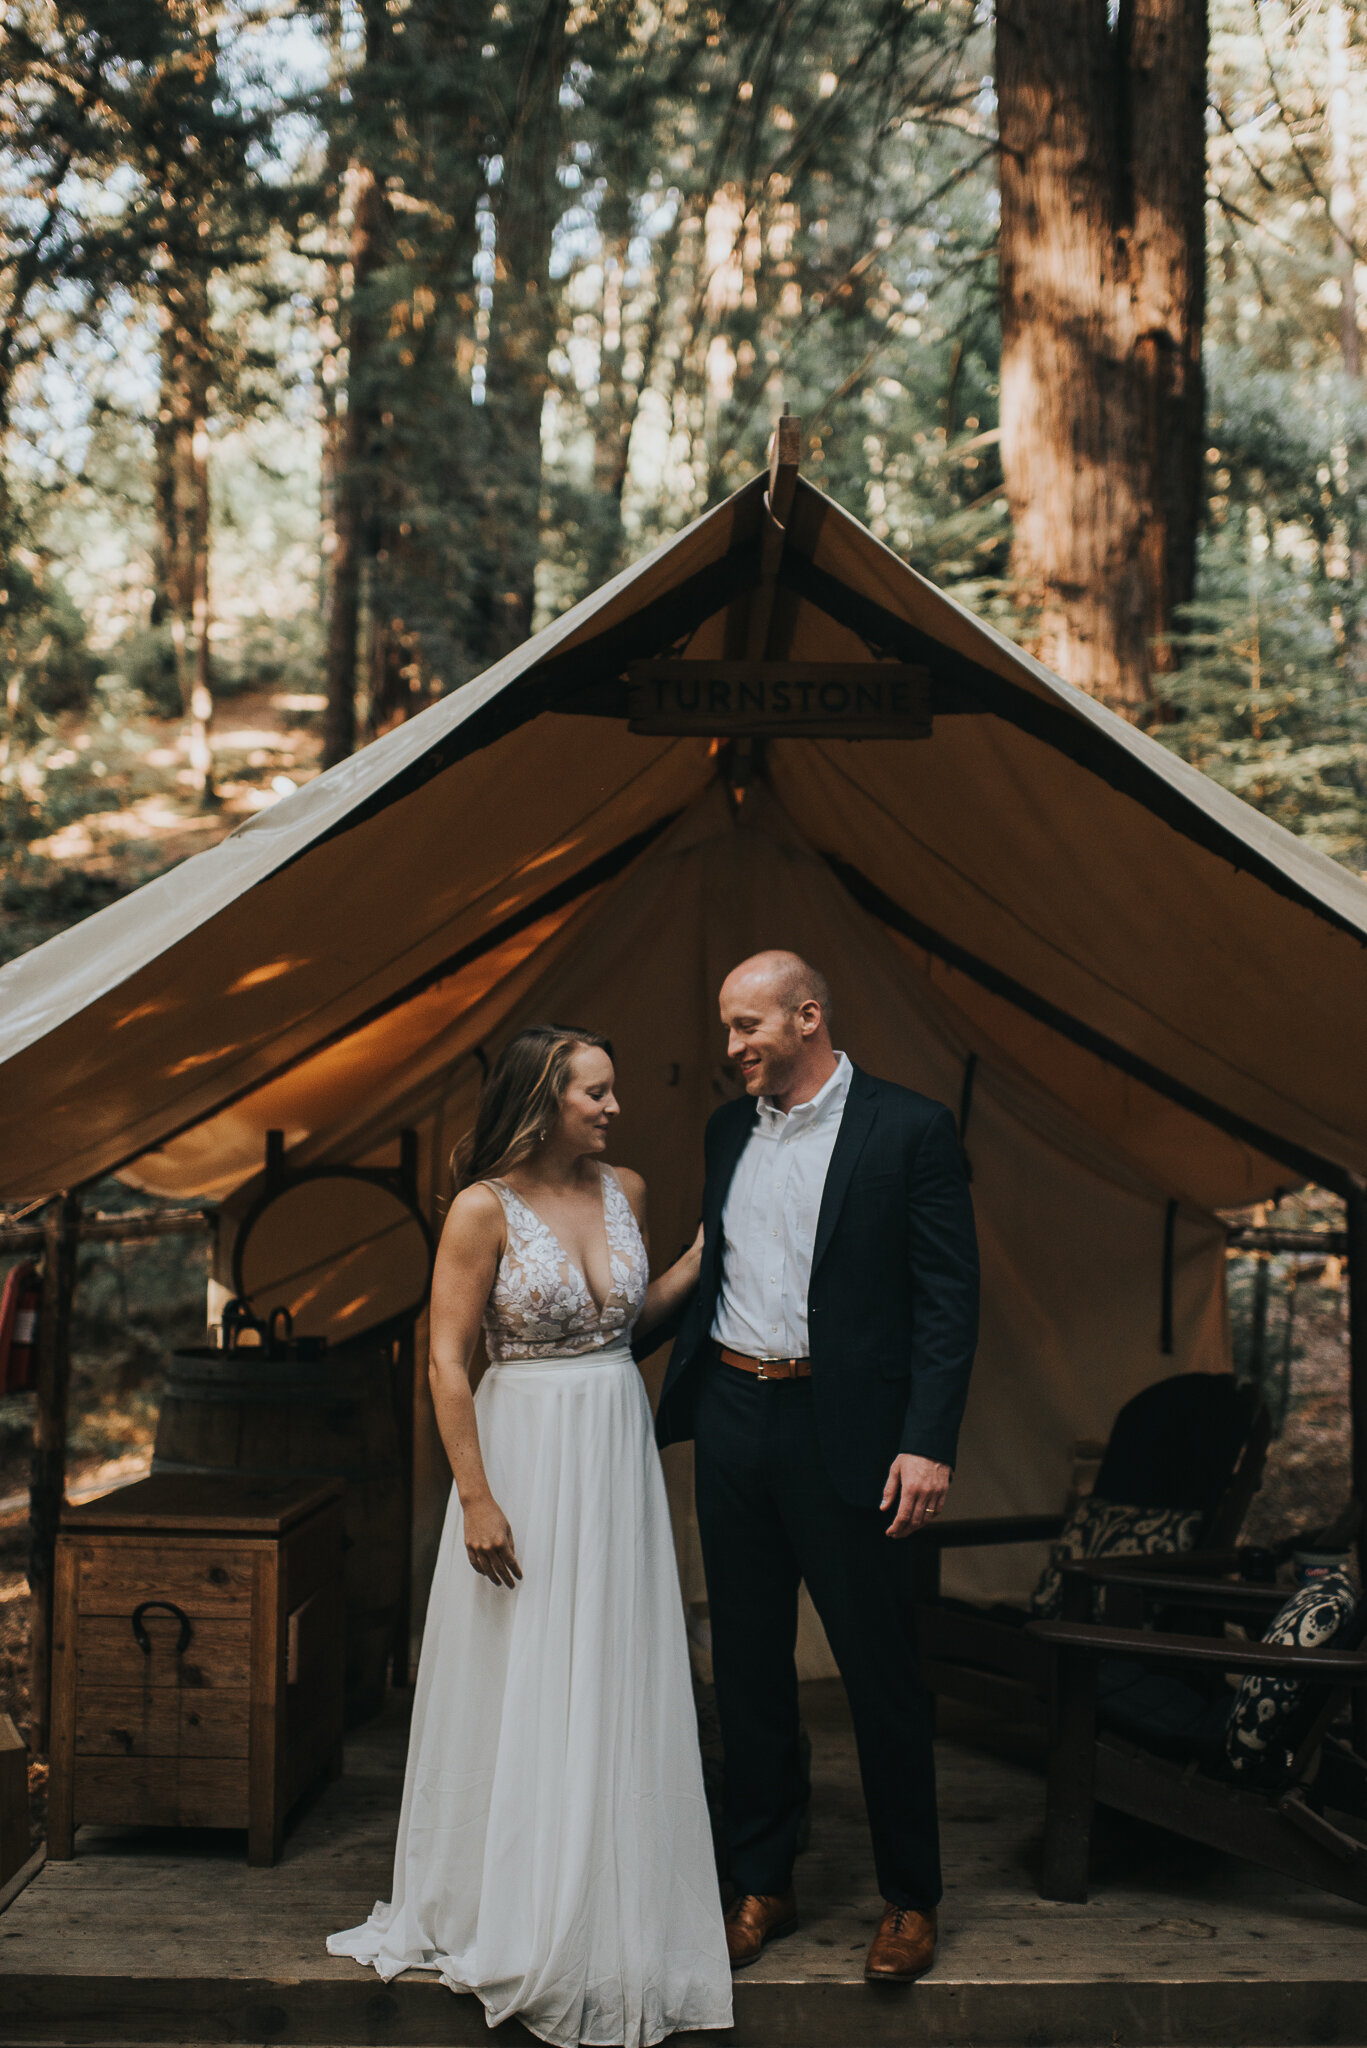 monterey wedding photographer // Old Whaling Station adobe wedding of Sean and Nicole